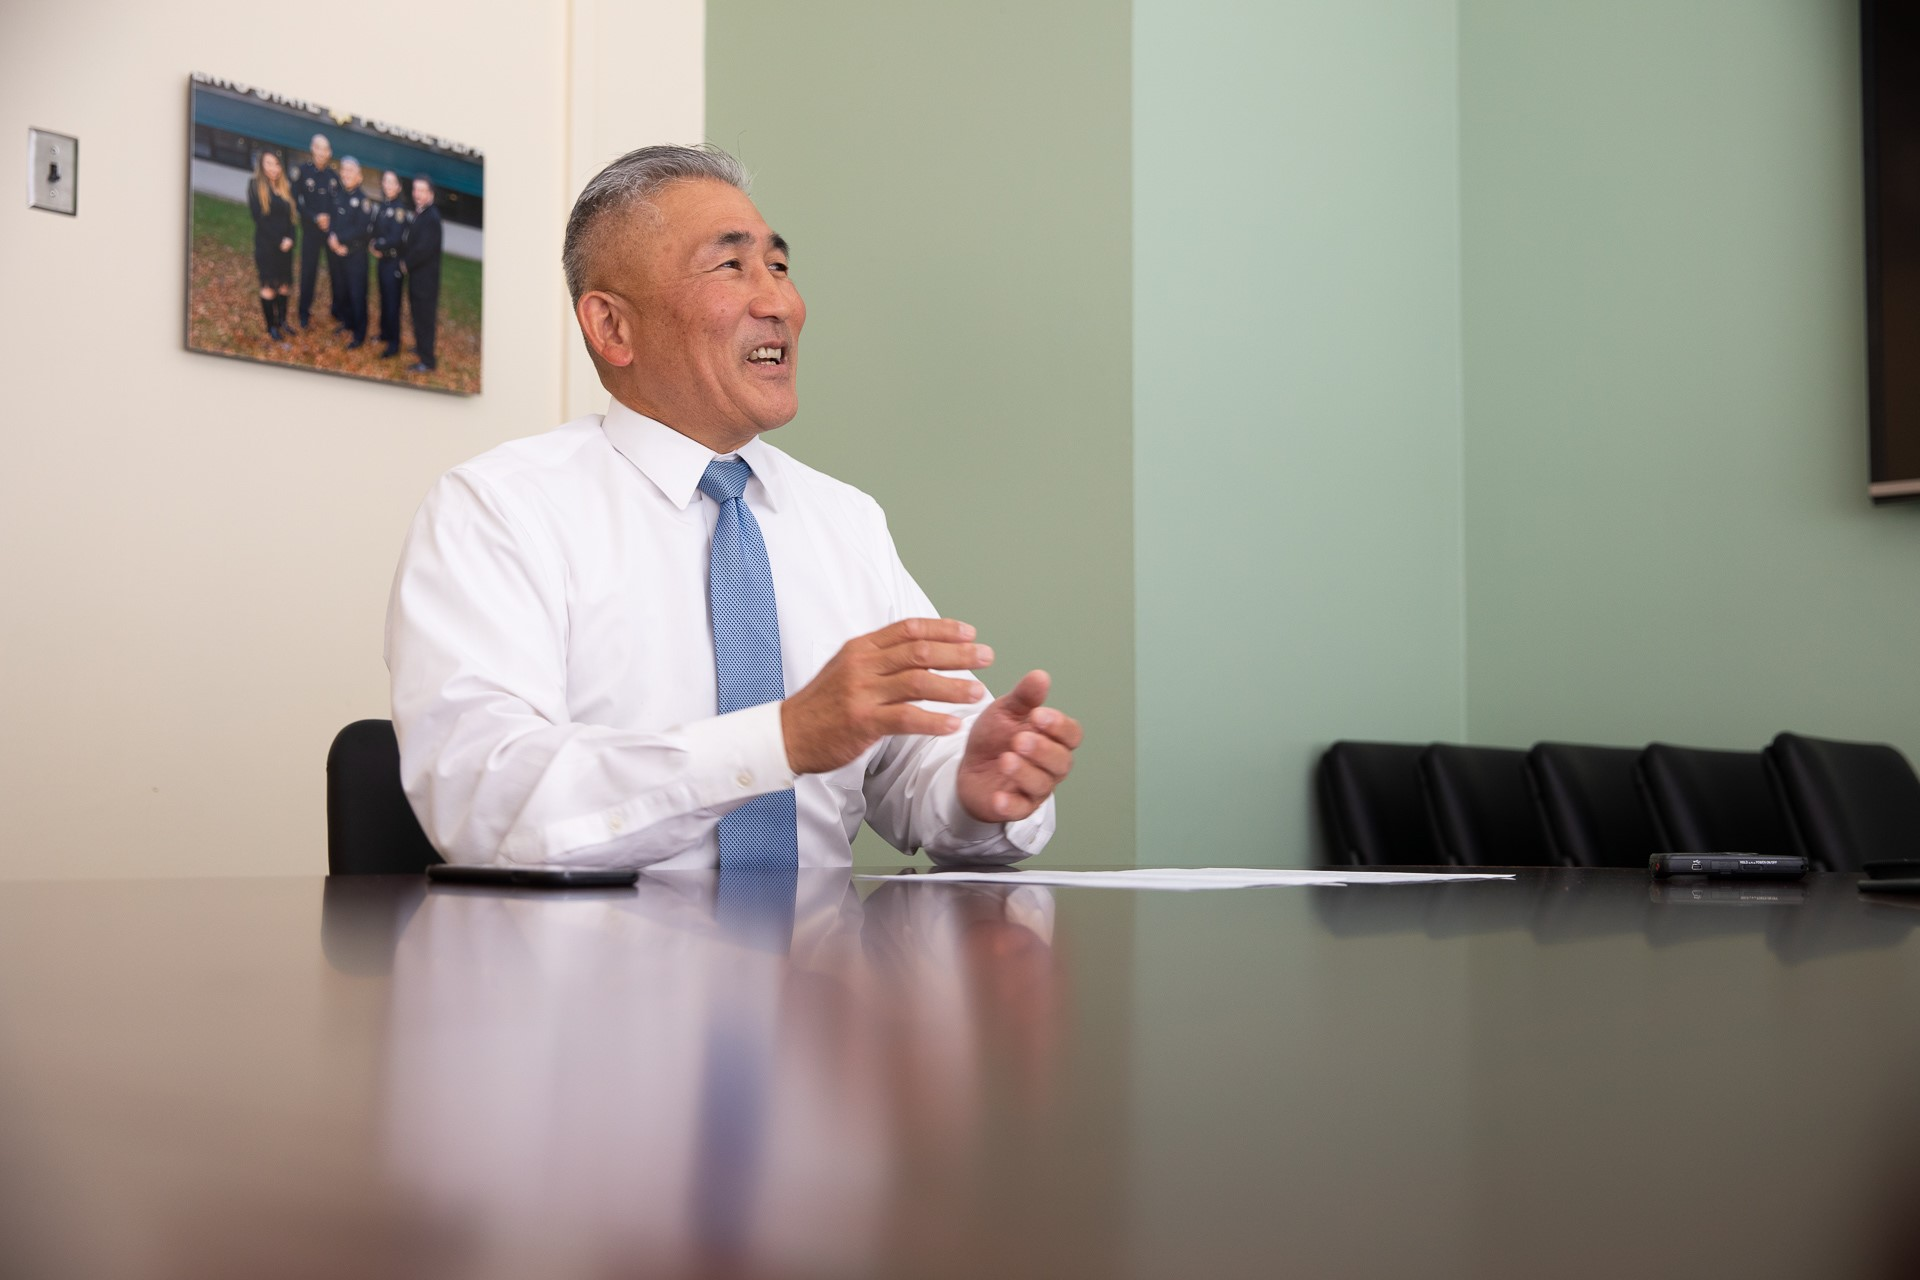 Sacramento State Police Chief Mark Iwasa prepares to retire after nearly 10 years leading the department.